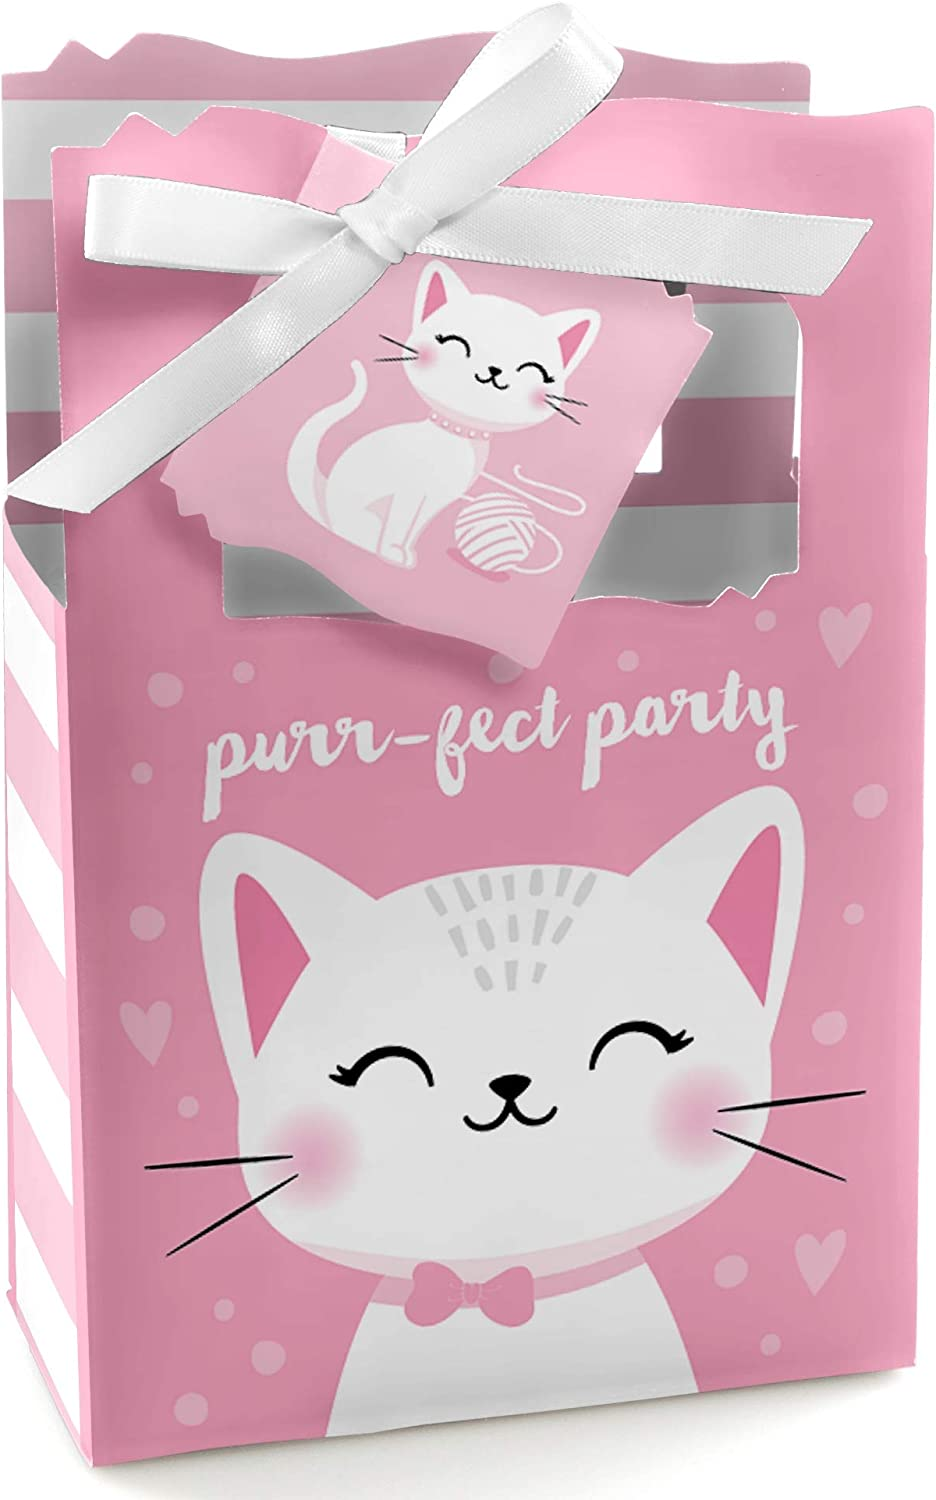 Candy Bar Wrapper Kitten Meow Baby Shower or Birthday Party Favors Purr-FECT Kitty Cat Set of 24